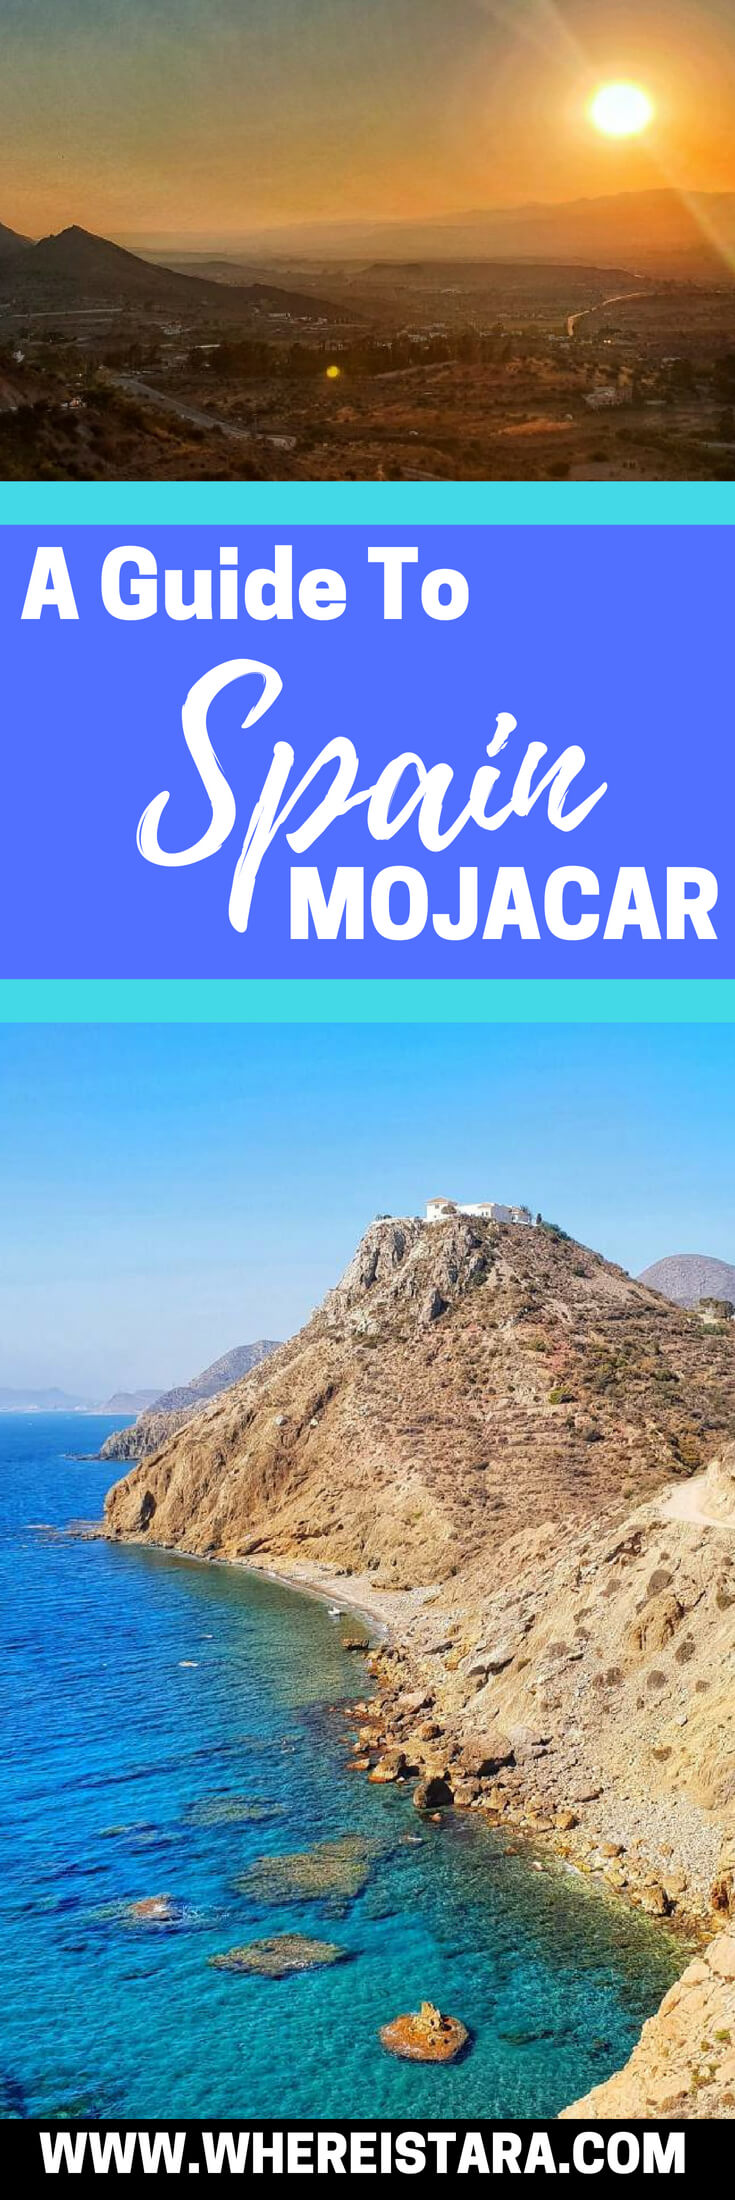 Things to do in Mojacar Spain hotels in Mojacar restaurants in Mojacar